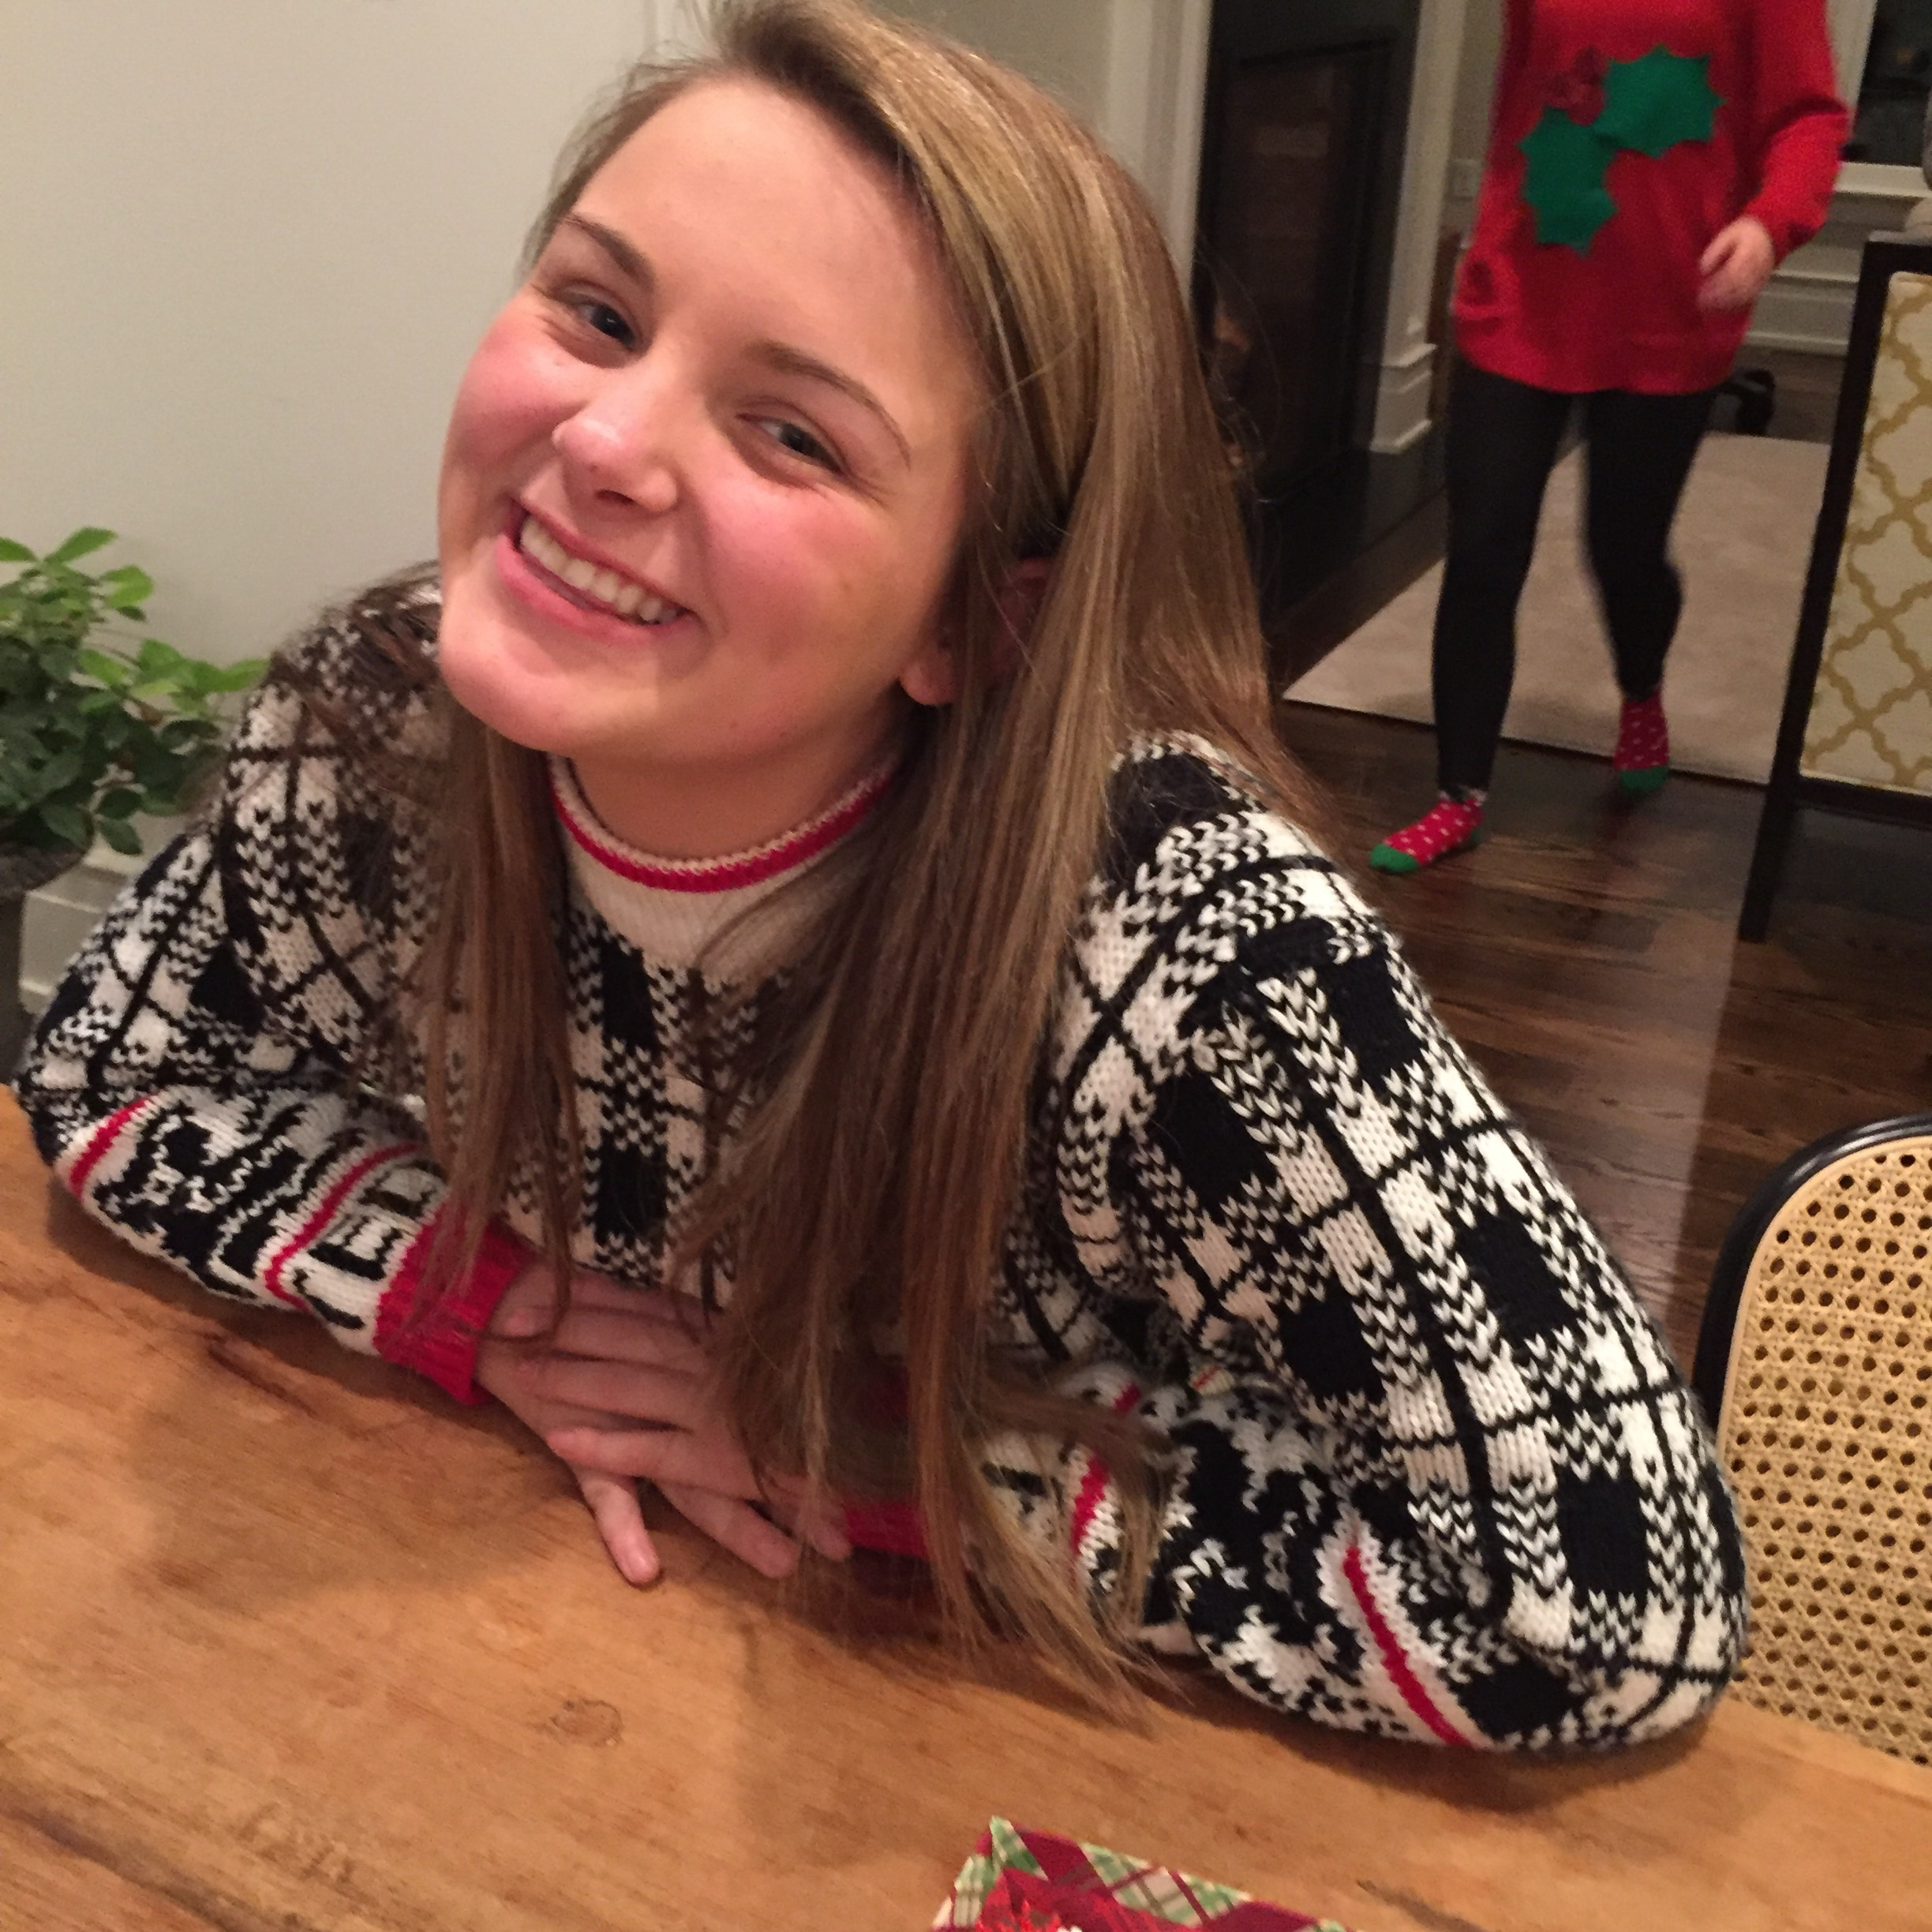 I adored Hannah's sweater... She told me it was her mom's from the 70's! Love it.